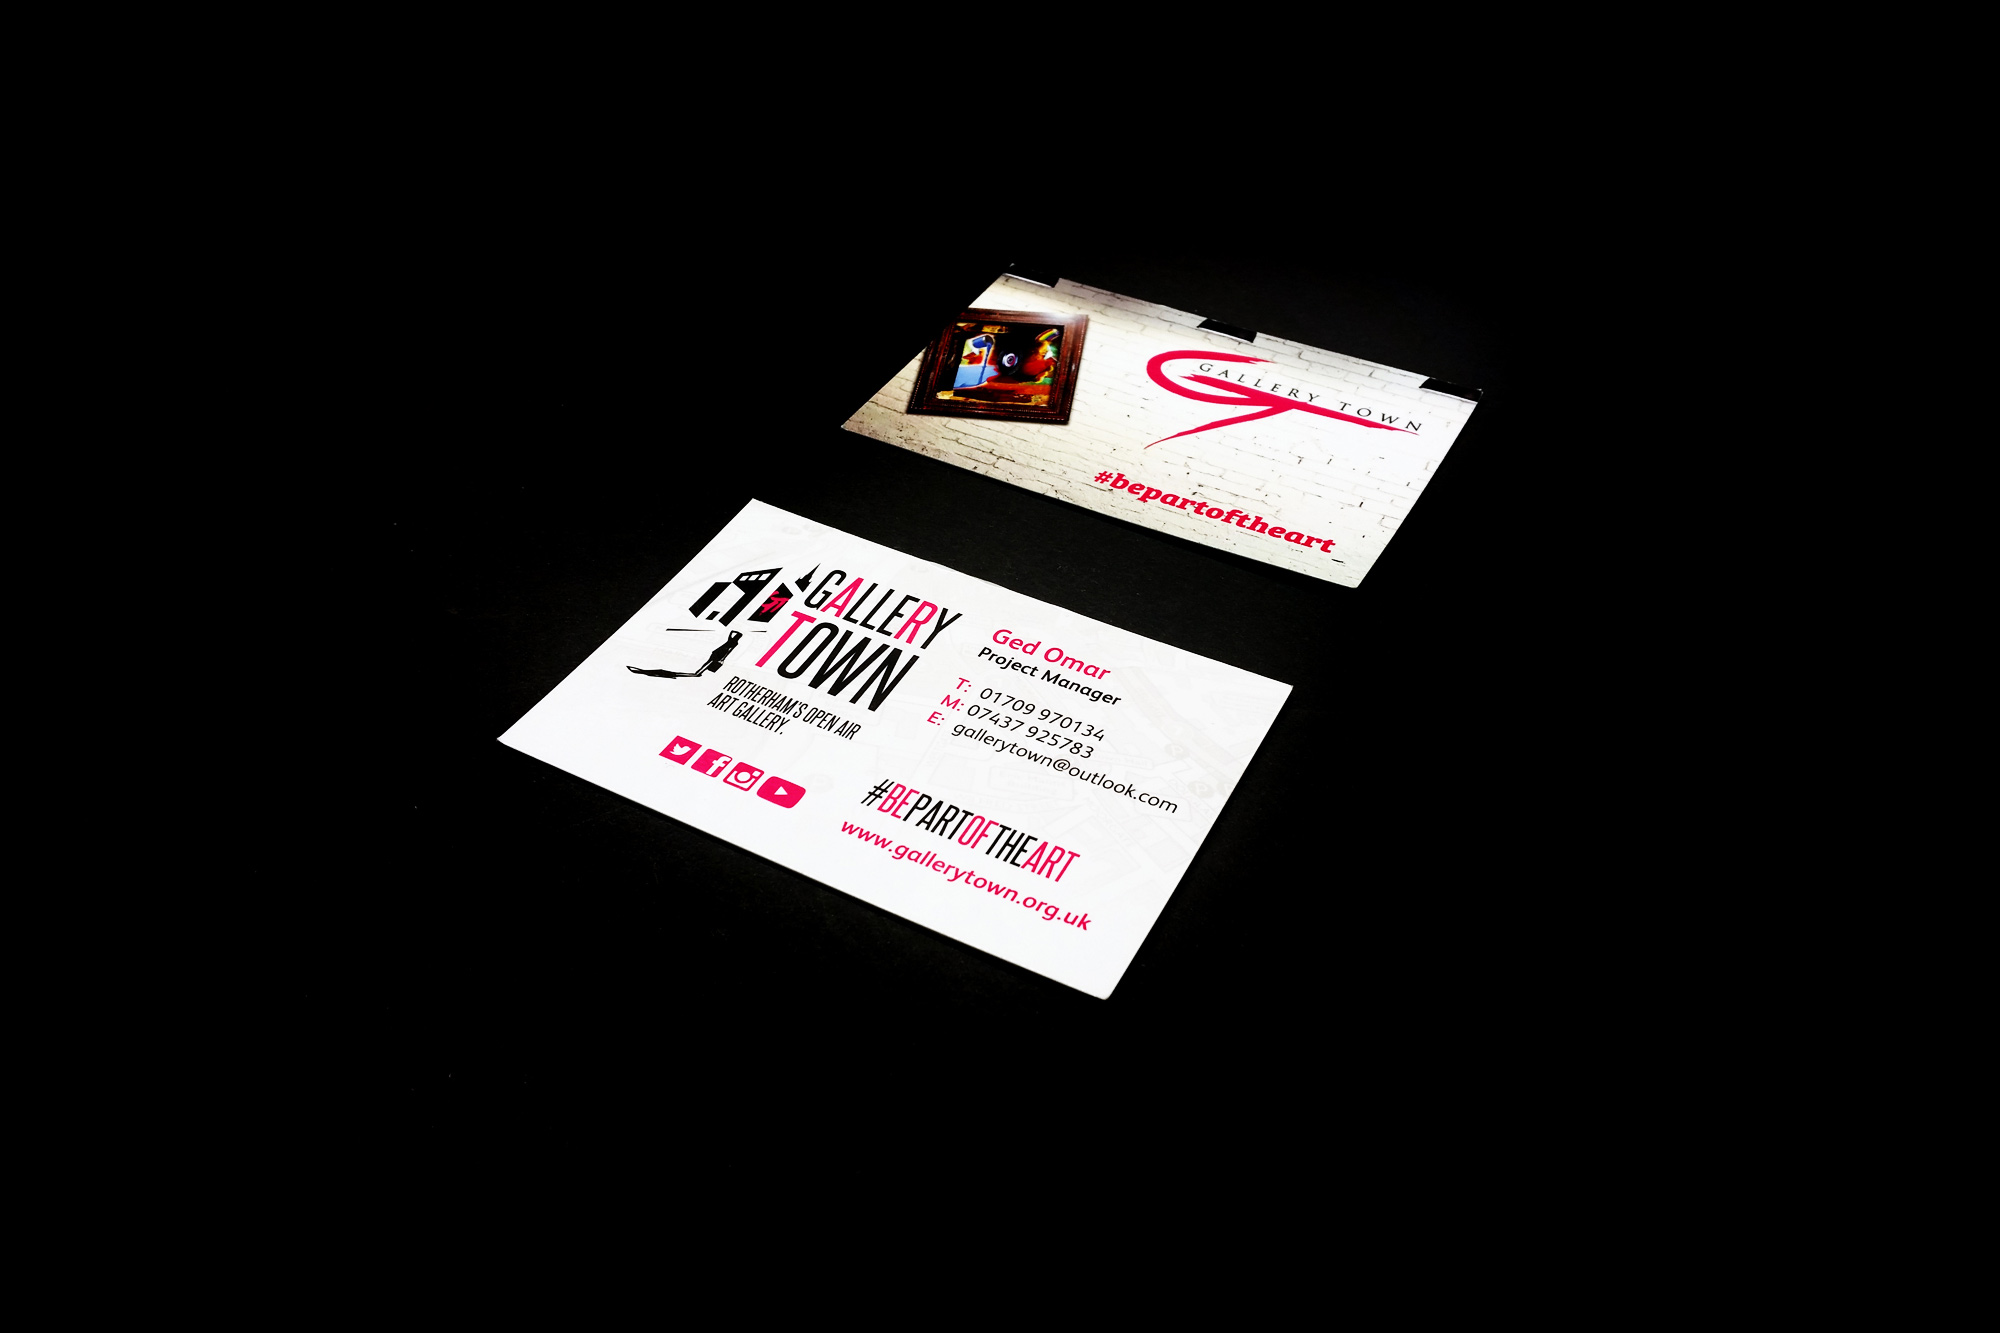 Gallery town business card design idea uk design rotherham idea design gallery town business card design idea uk design rotherham reheart Choice Image